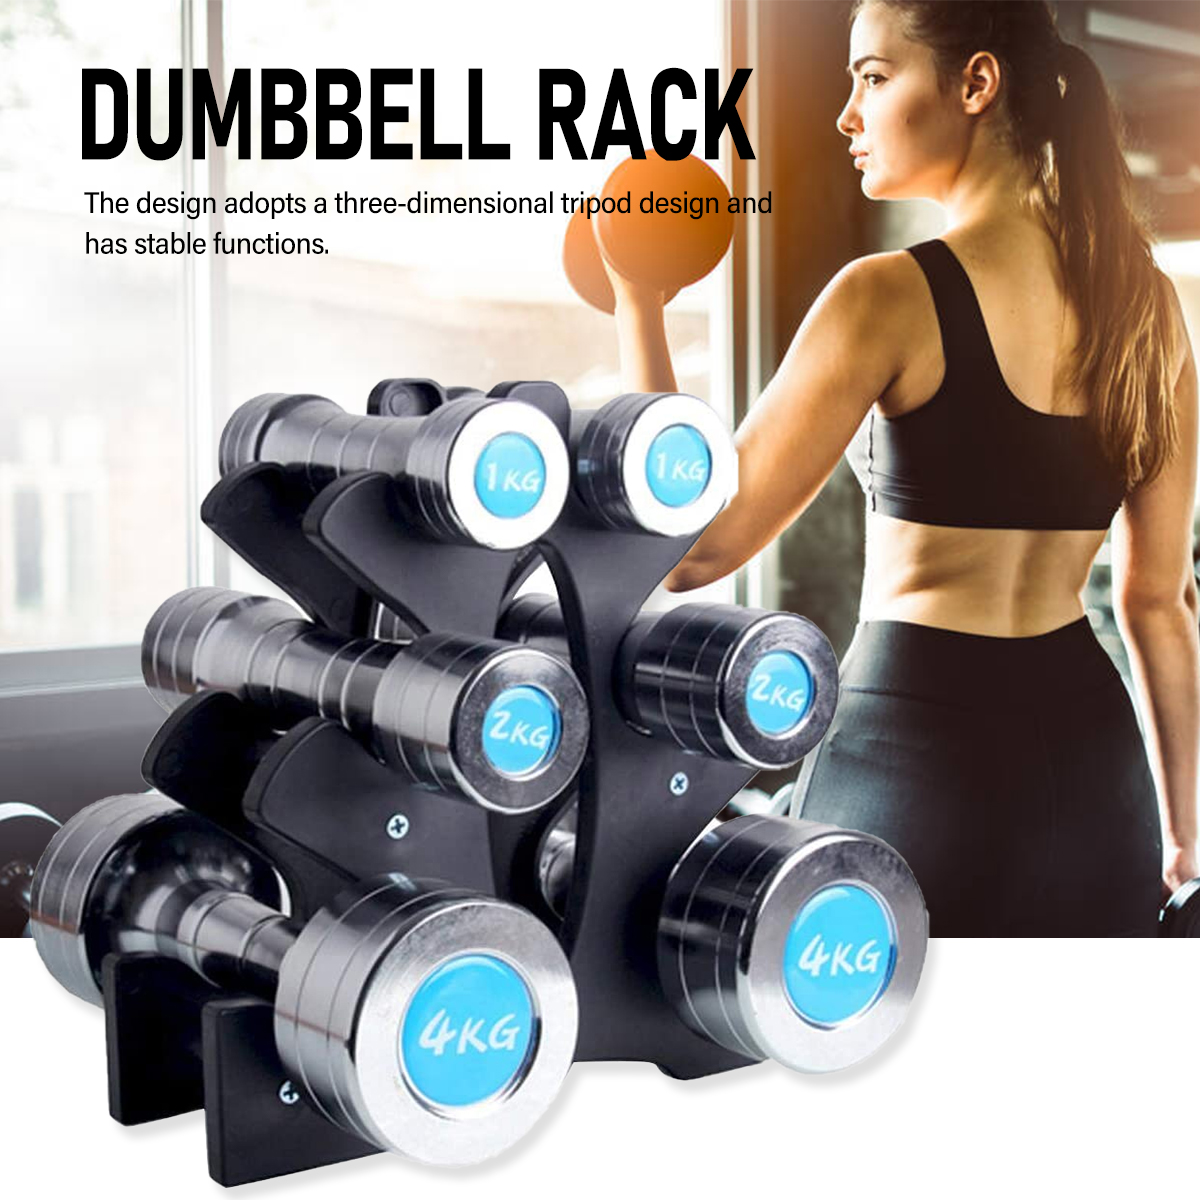 3-Tier Dumbbell Storage Rack Stand For Home Gym Exercise Multilevel Hand Weight Tower Stand For Gym Organization